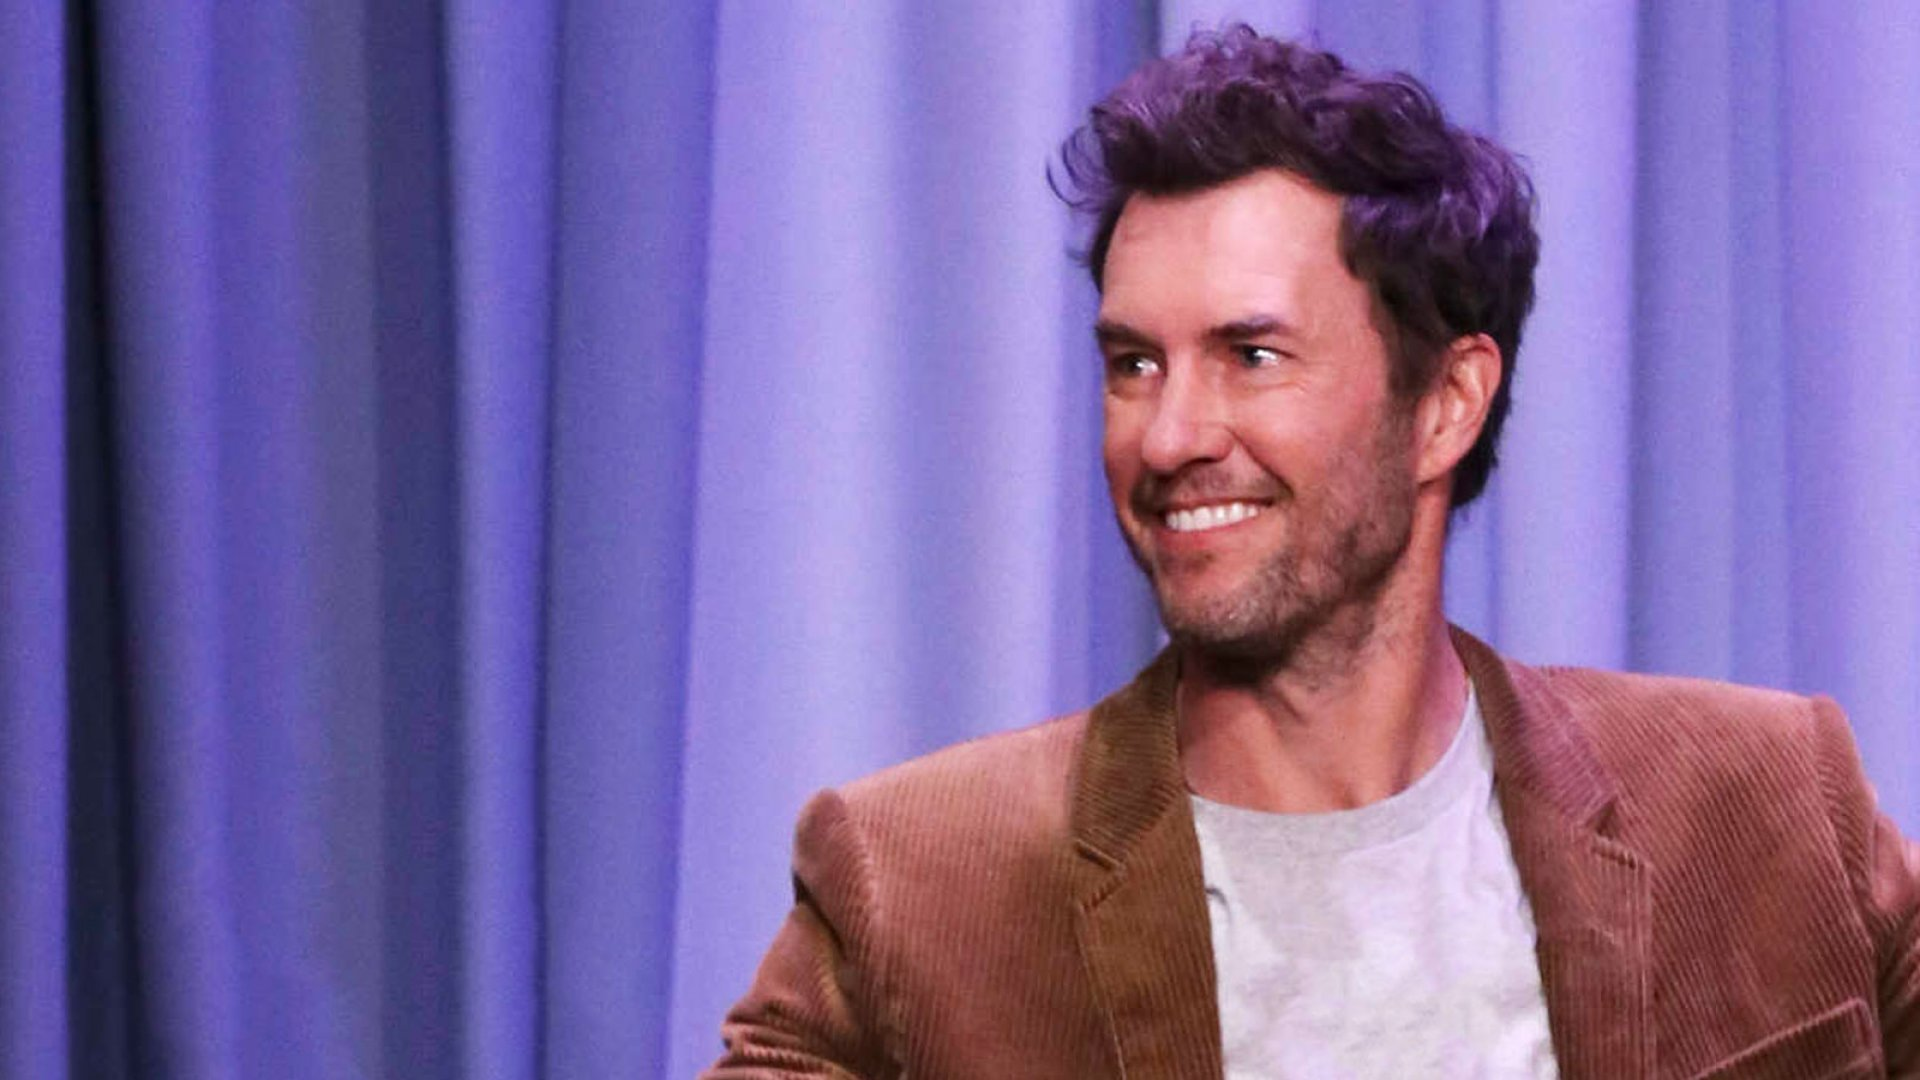 Toms Founder Blake Mycoskie's Simple Habits for Recovering From Burnout